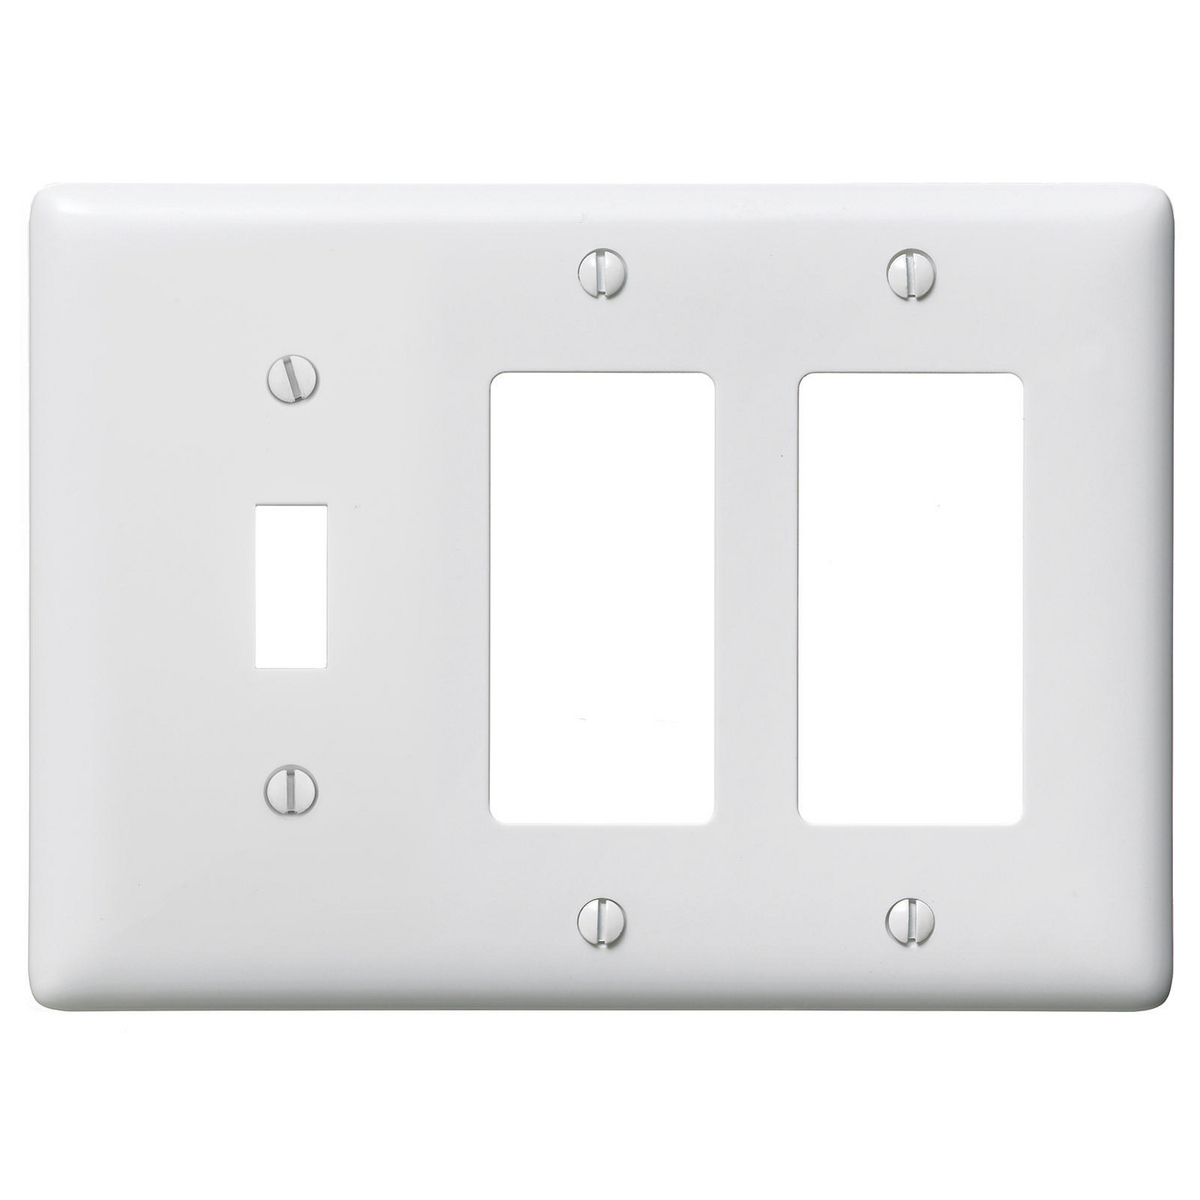 Premise Wiring Hubbell Np1262w Wallplates And Box Covers Wallplate